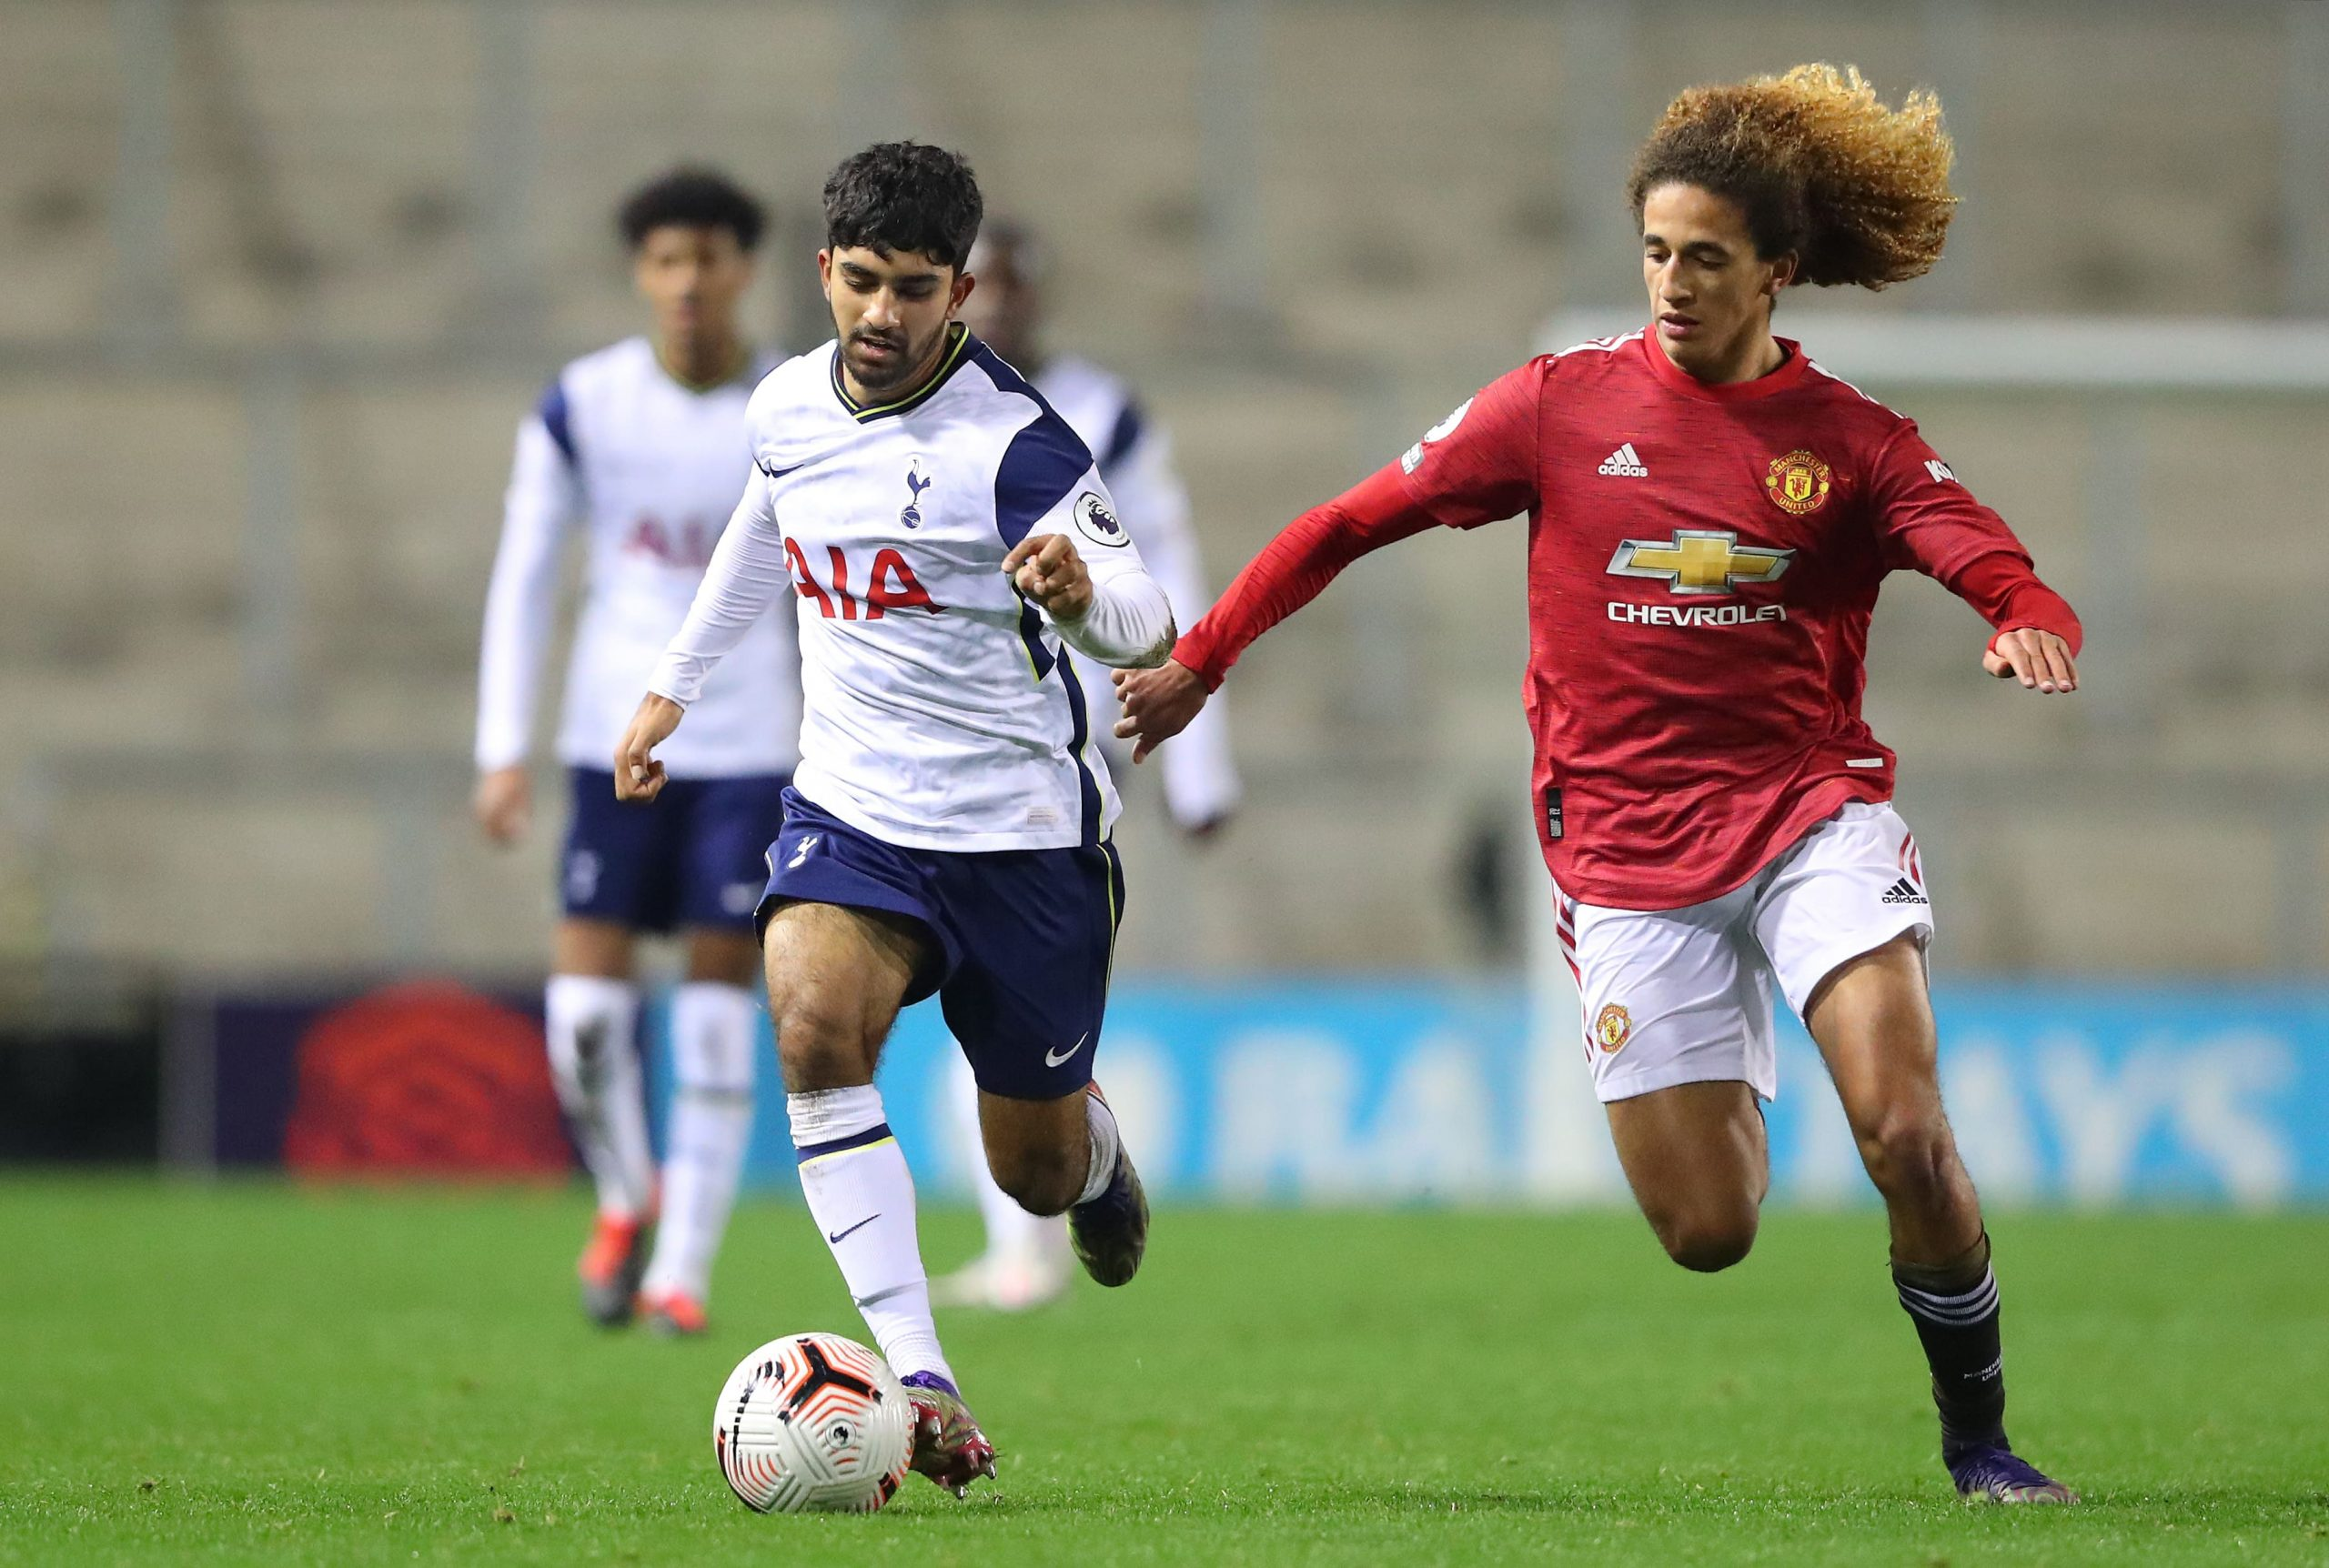 Dilan Markanday in action against Manchester United U-23 in Premier League 2. (GETTY Images)